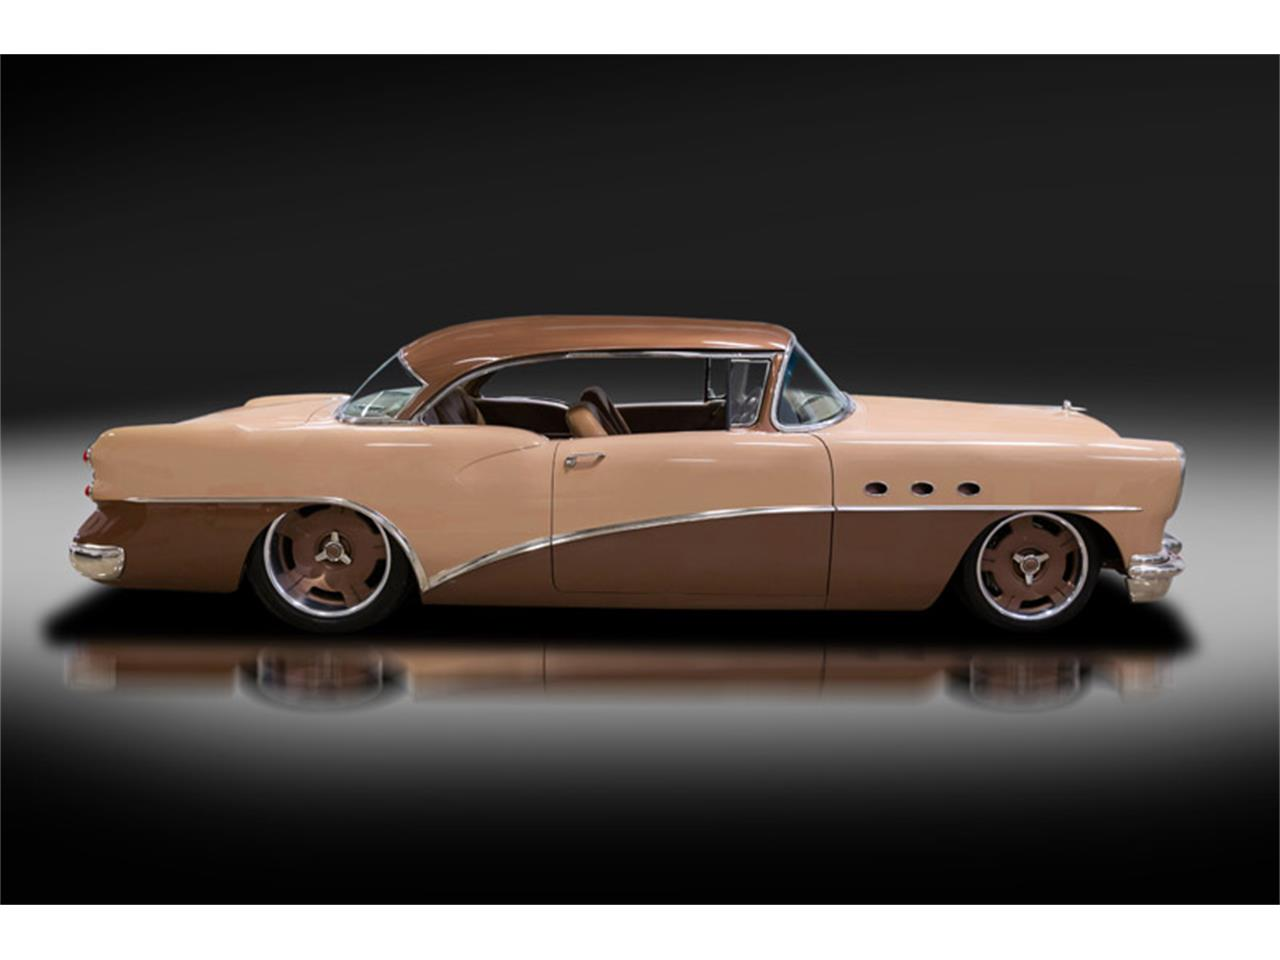 Large Picture of Classic 1954 Buick Special located in Massachusetts Auction Vehicle Offered by MS Classic Cars - QE5T